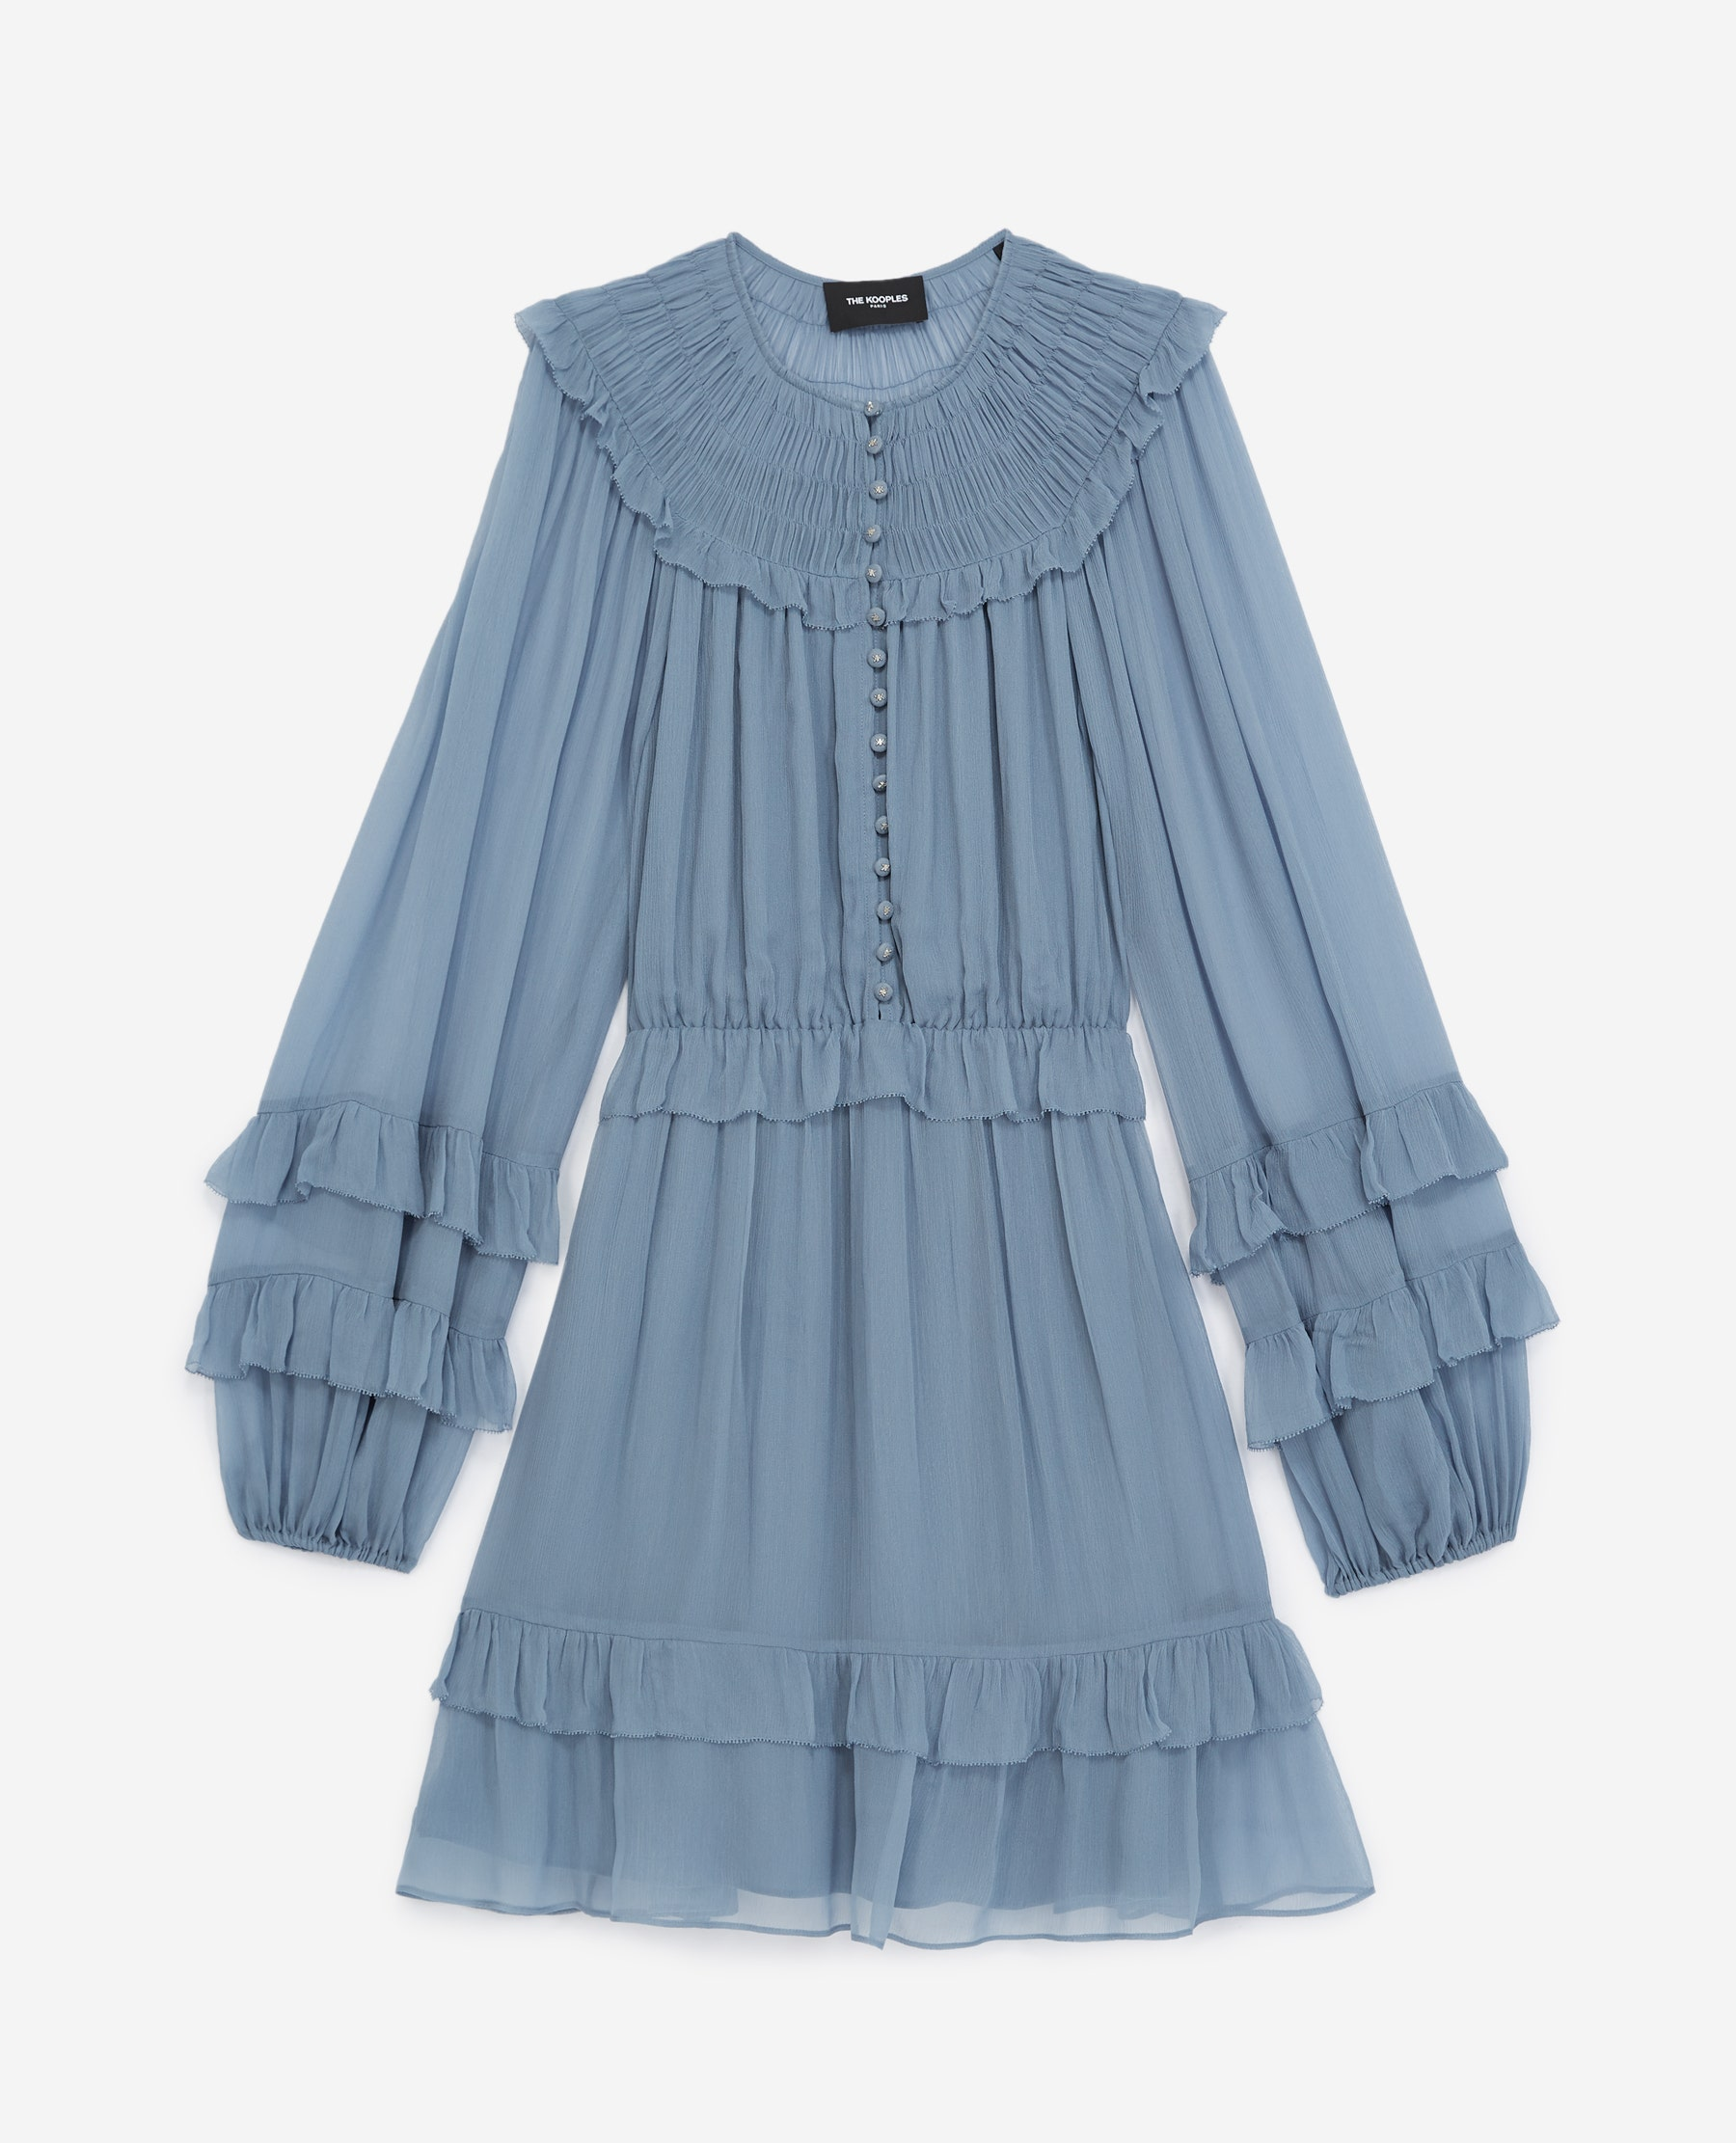 Robe courte bleu ciel à volants fluide - The Kooples - Modalova